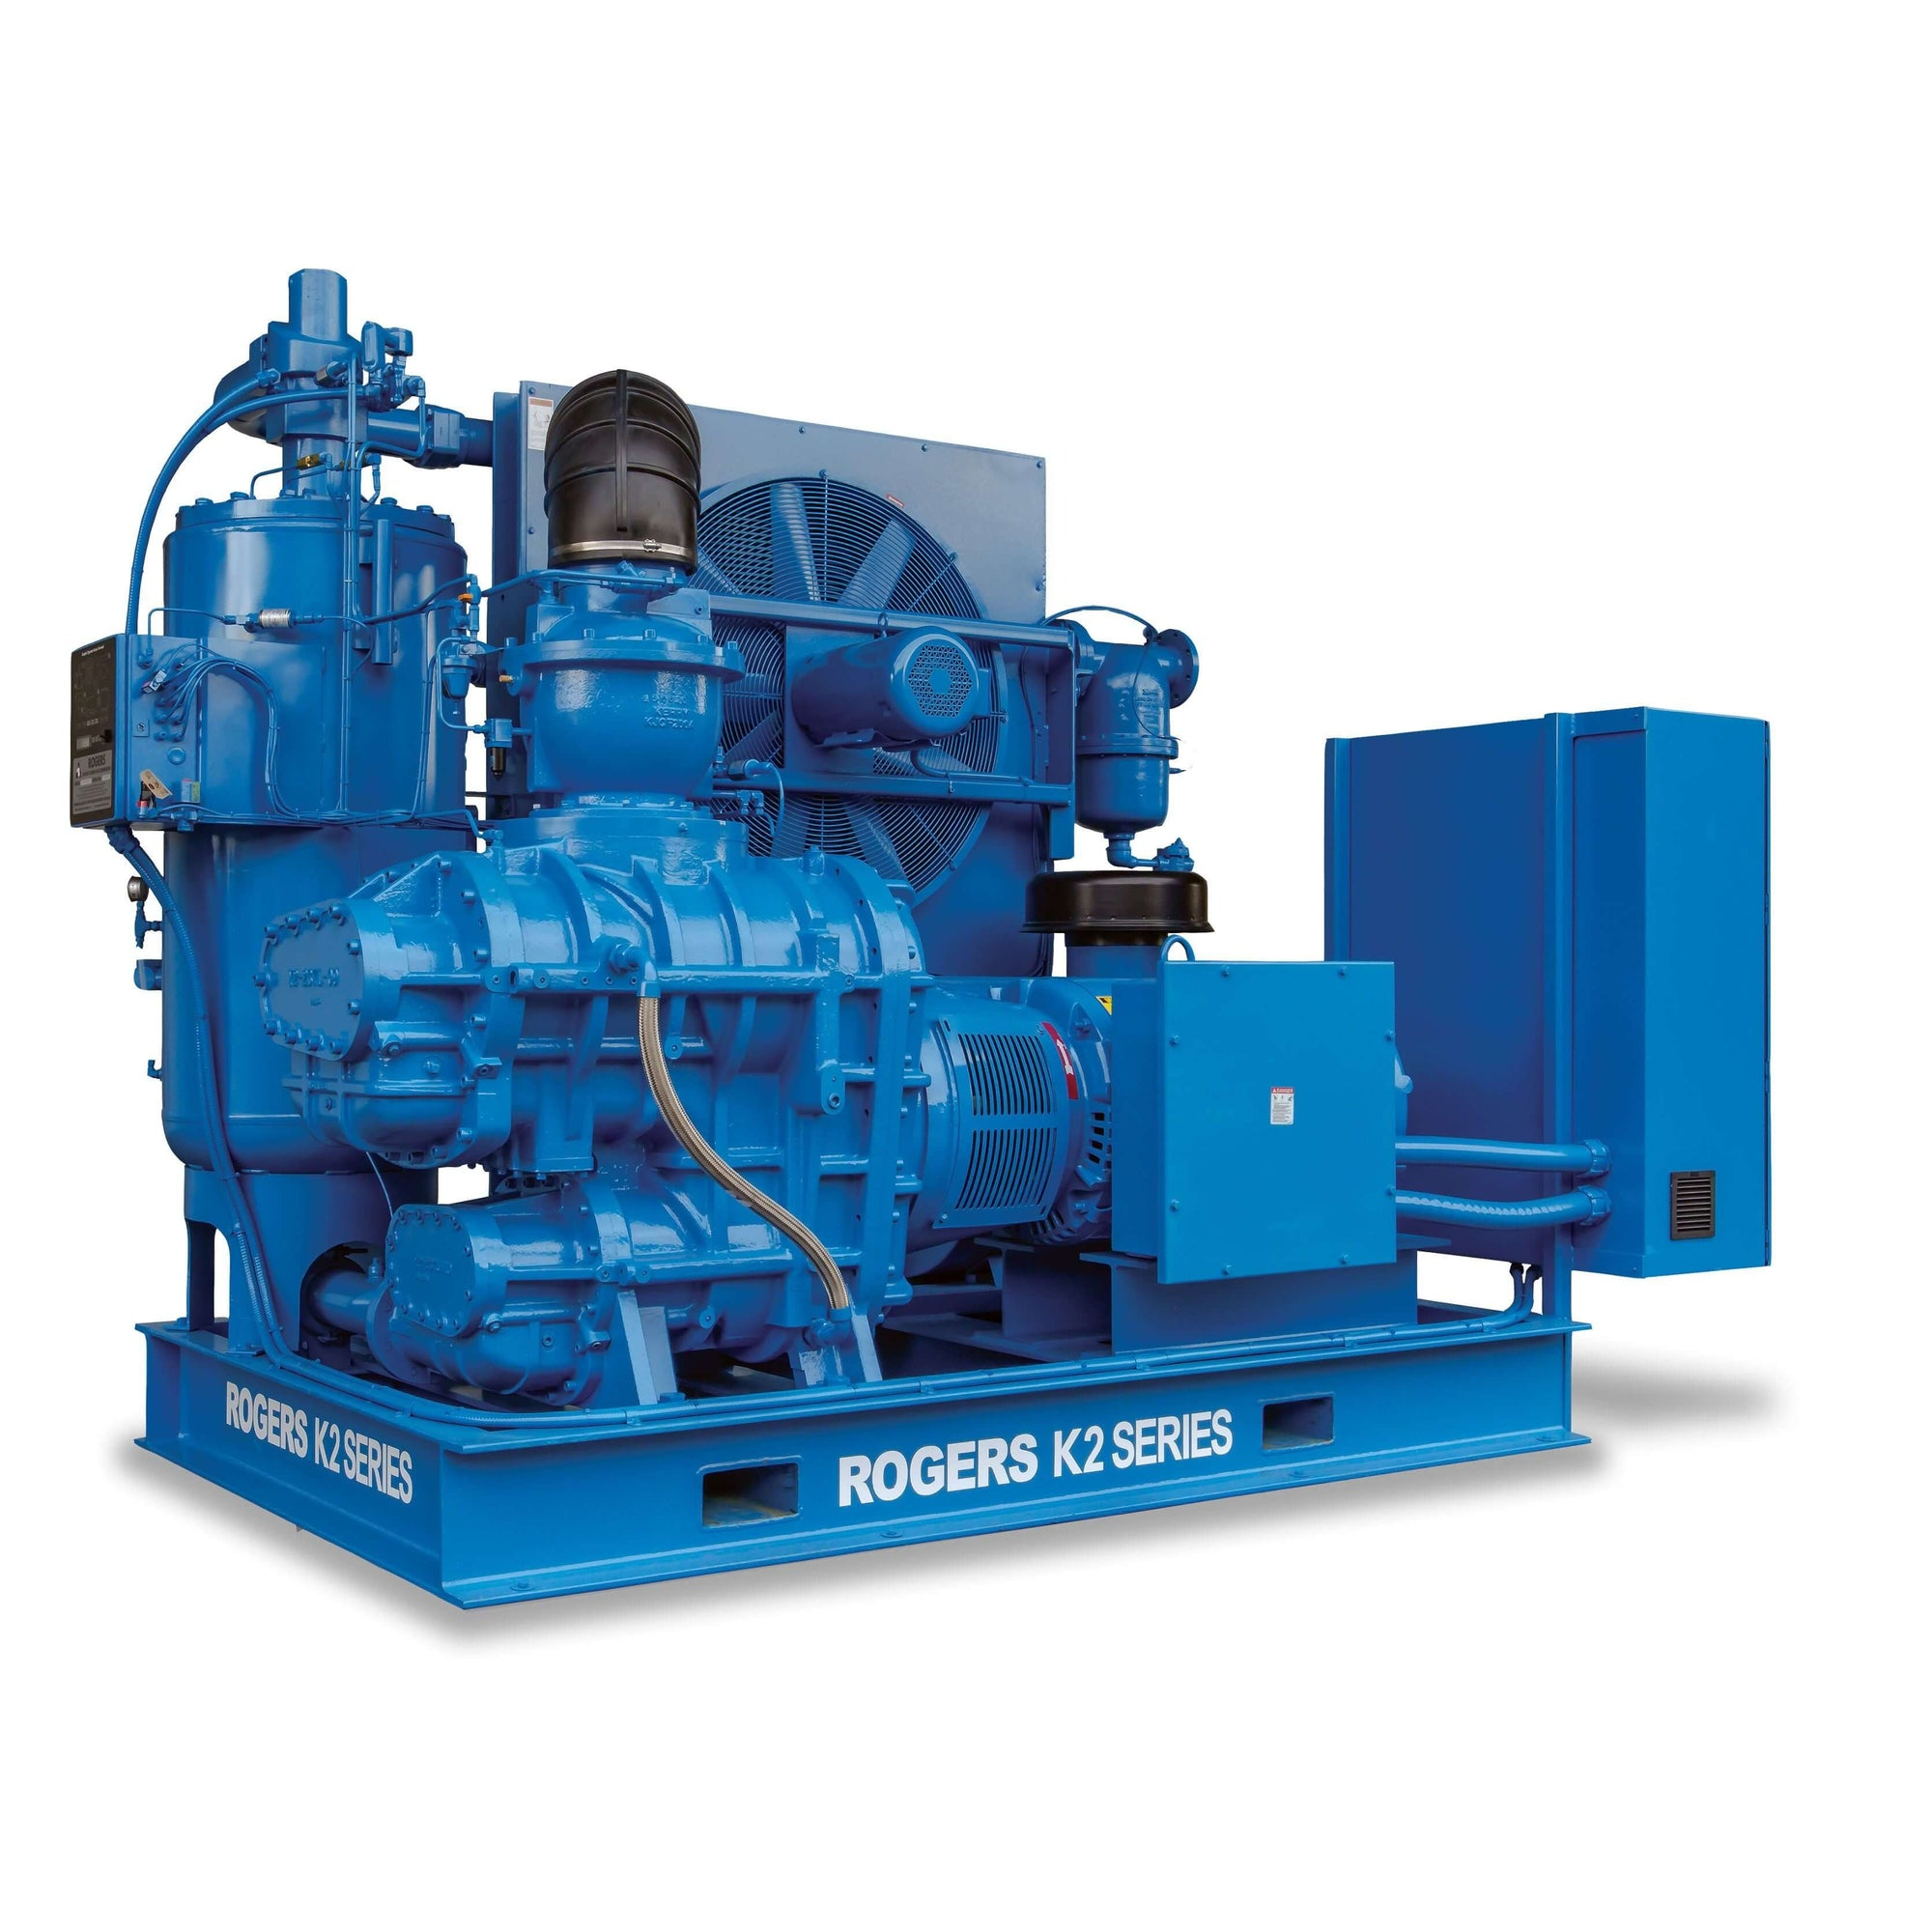 Rogers Rotary Screw Air Compressor - K2/K2V Series